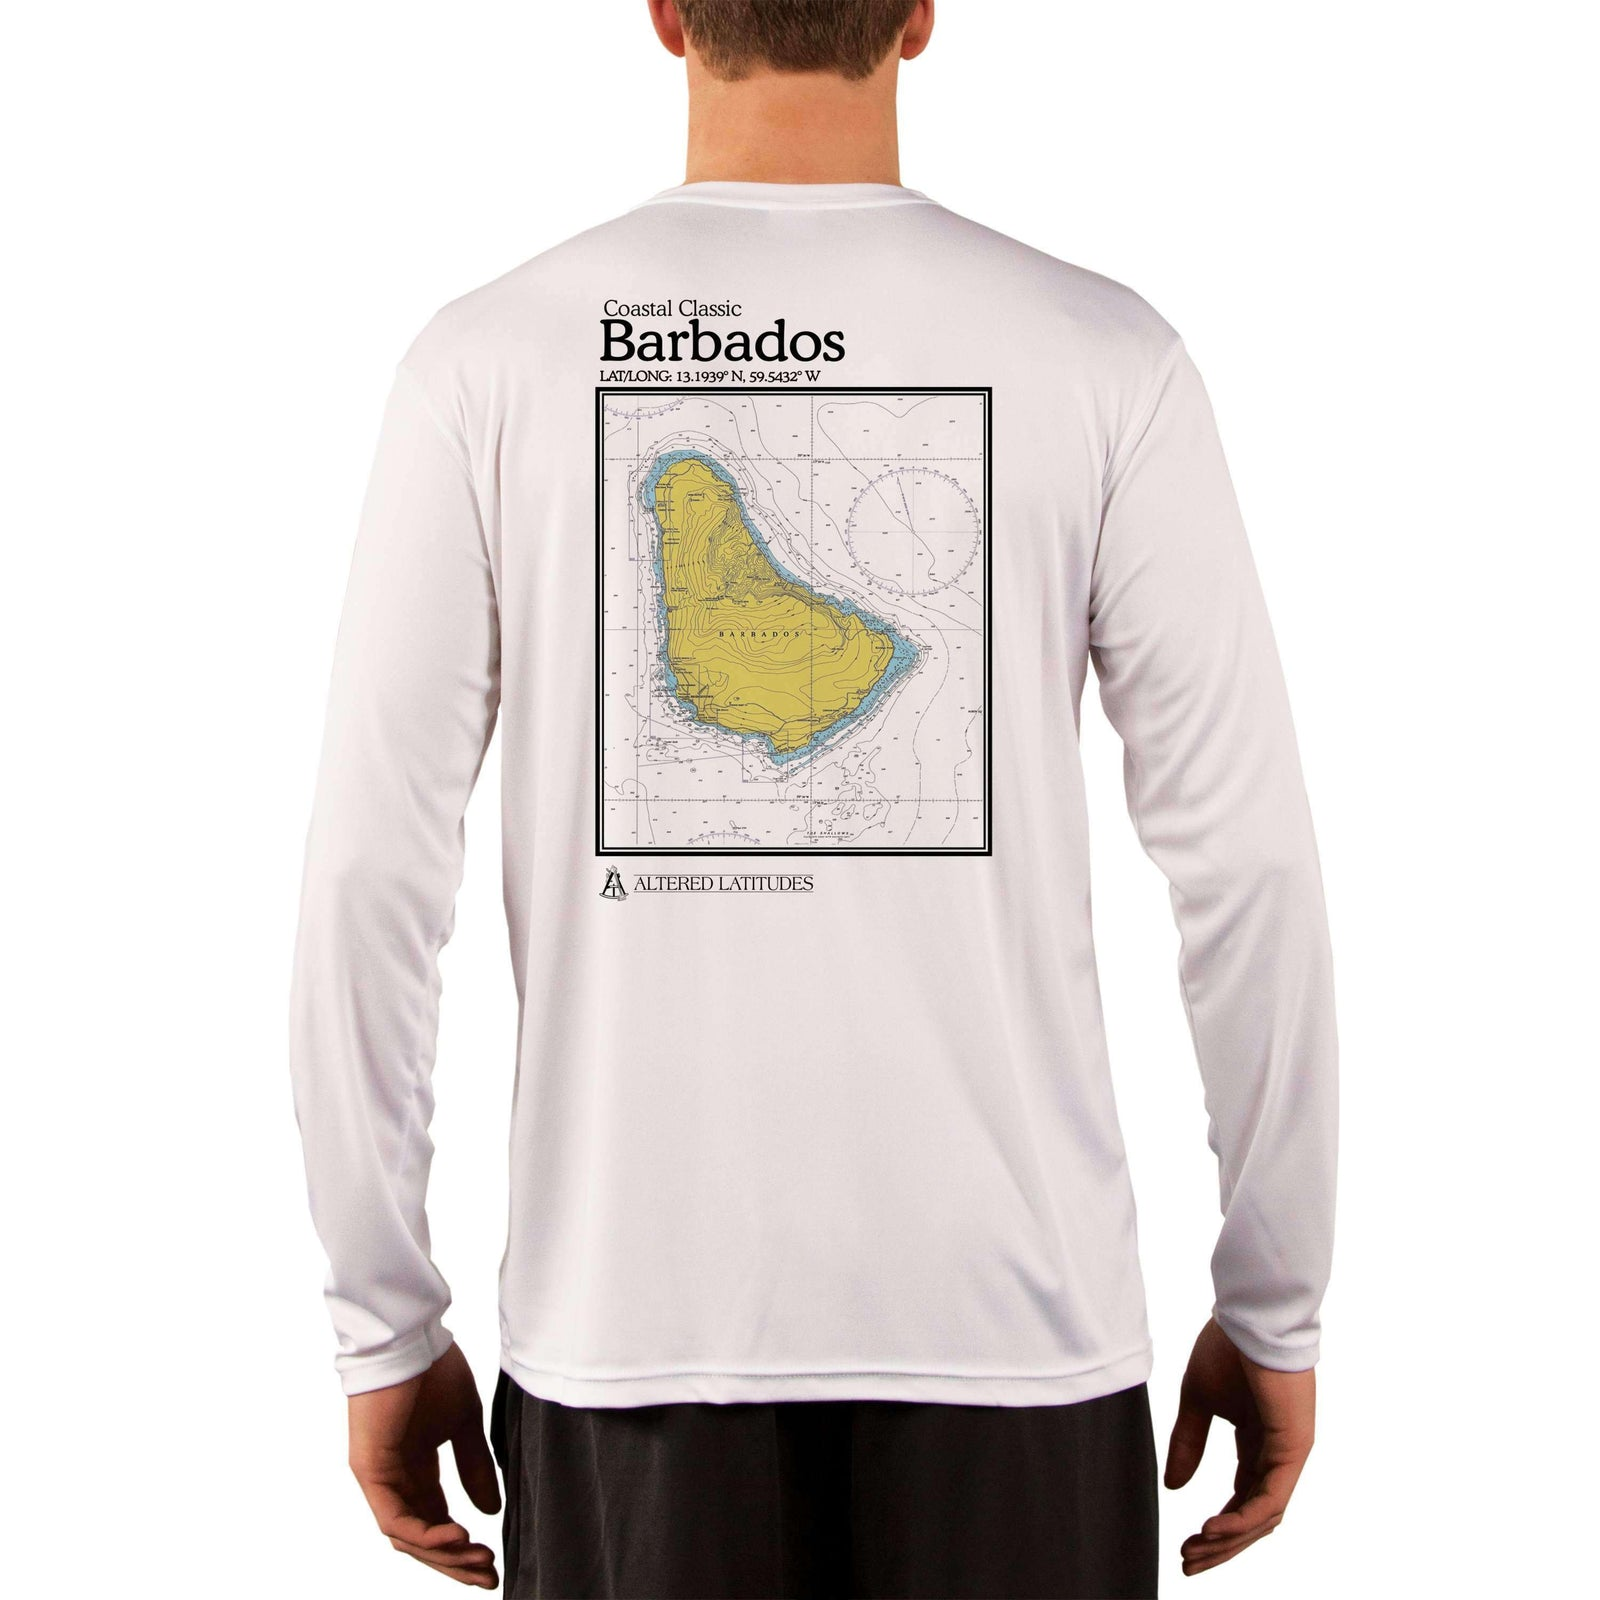 Coastal Classics Barbados Men's UPF 5+ Long Sleeve T-Shirt - Altered Latitudes